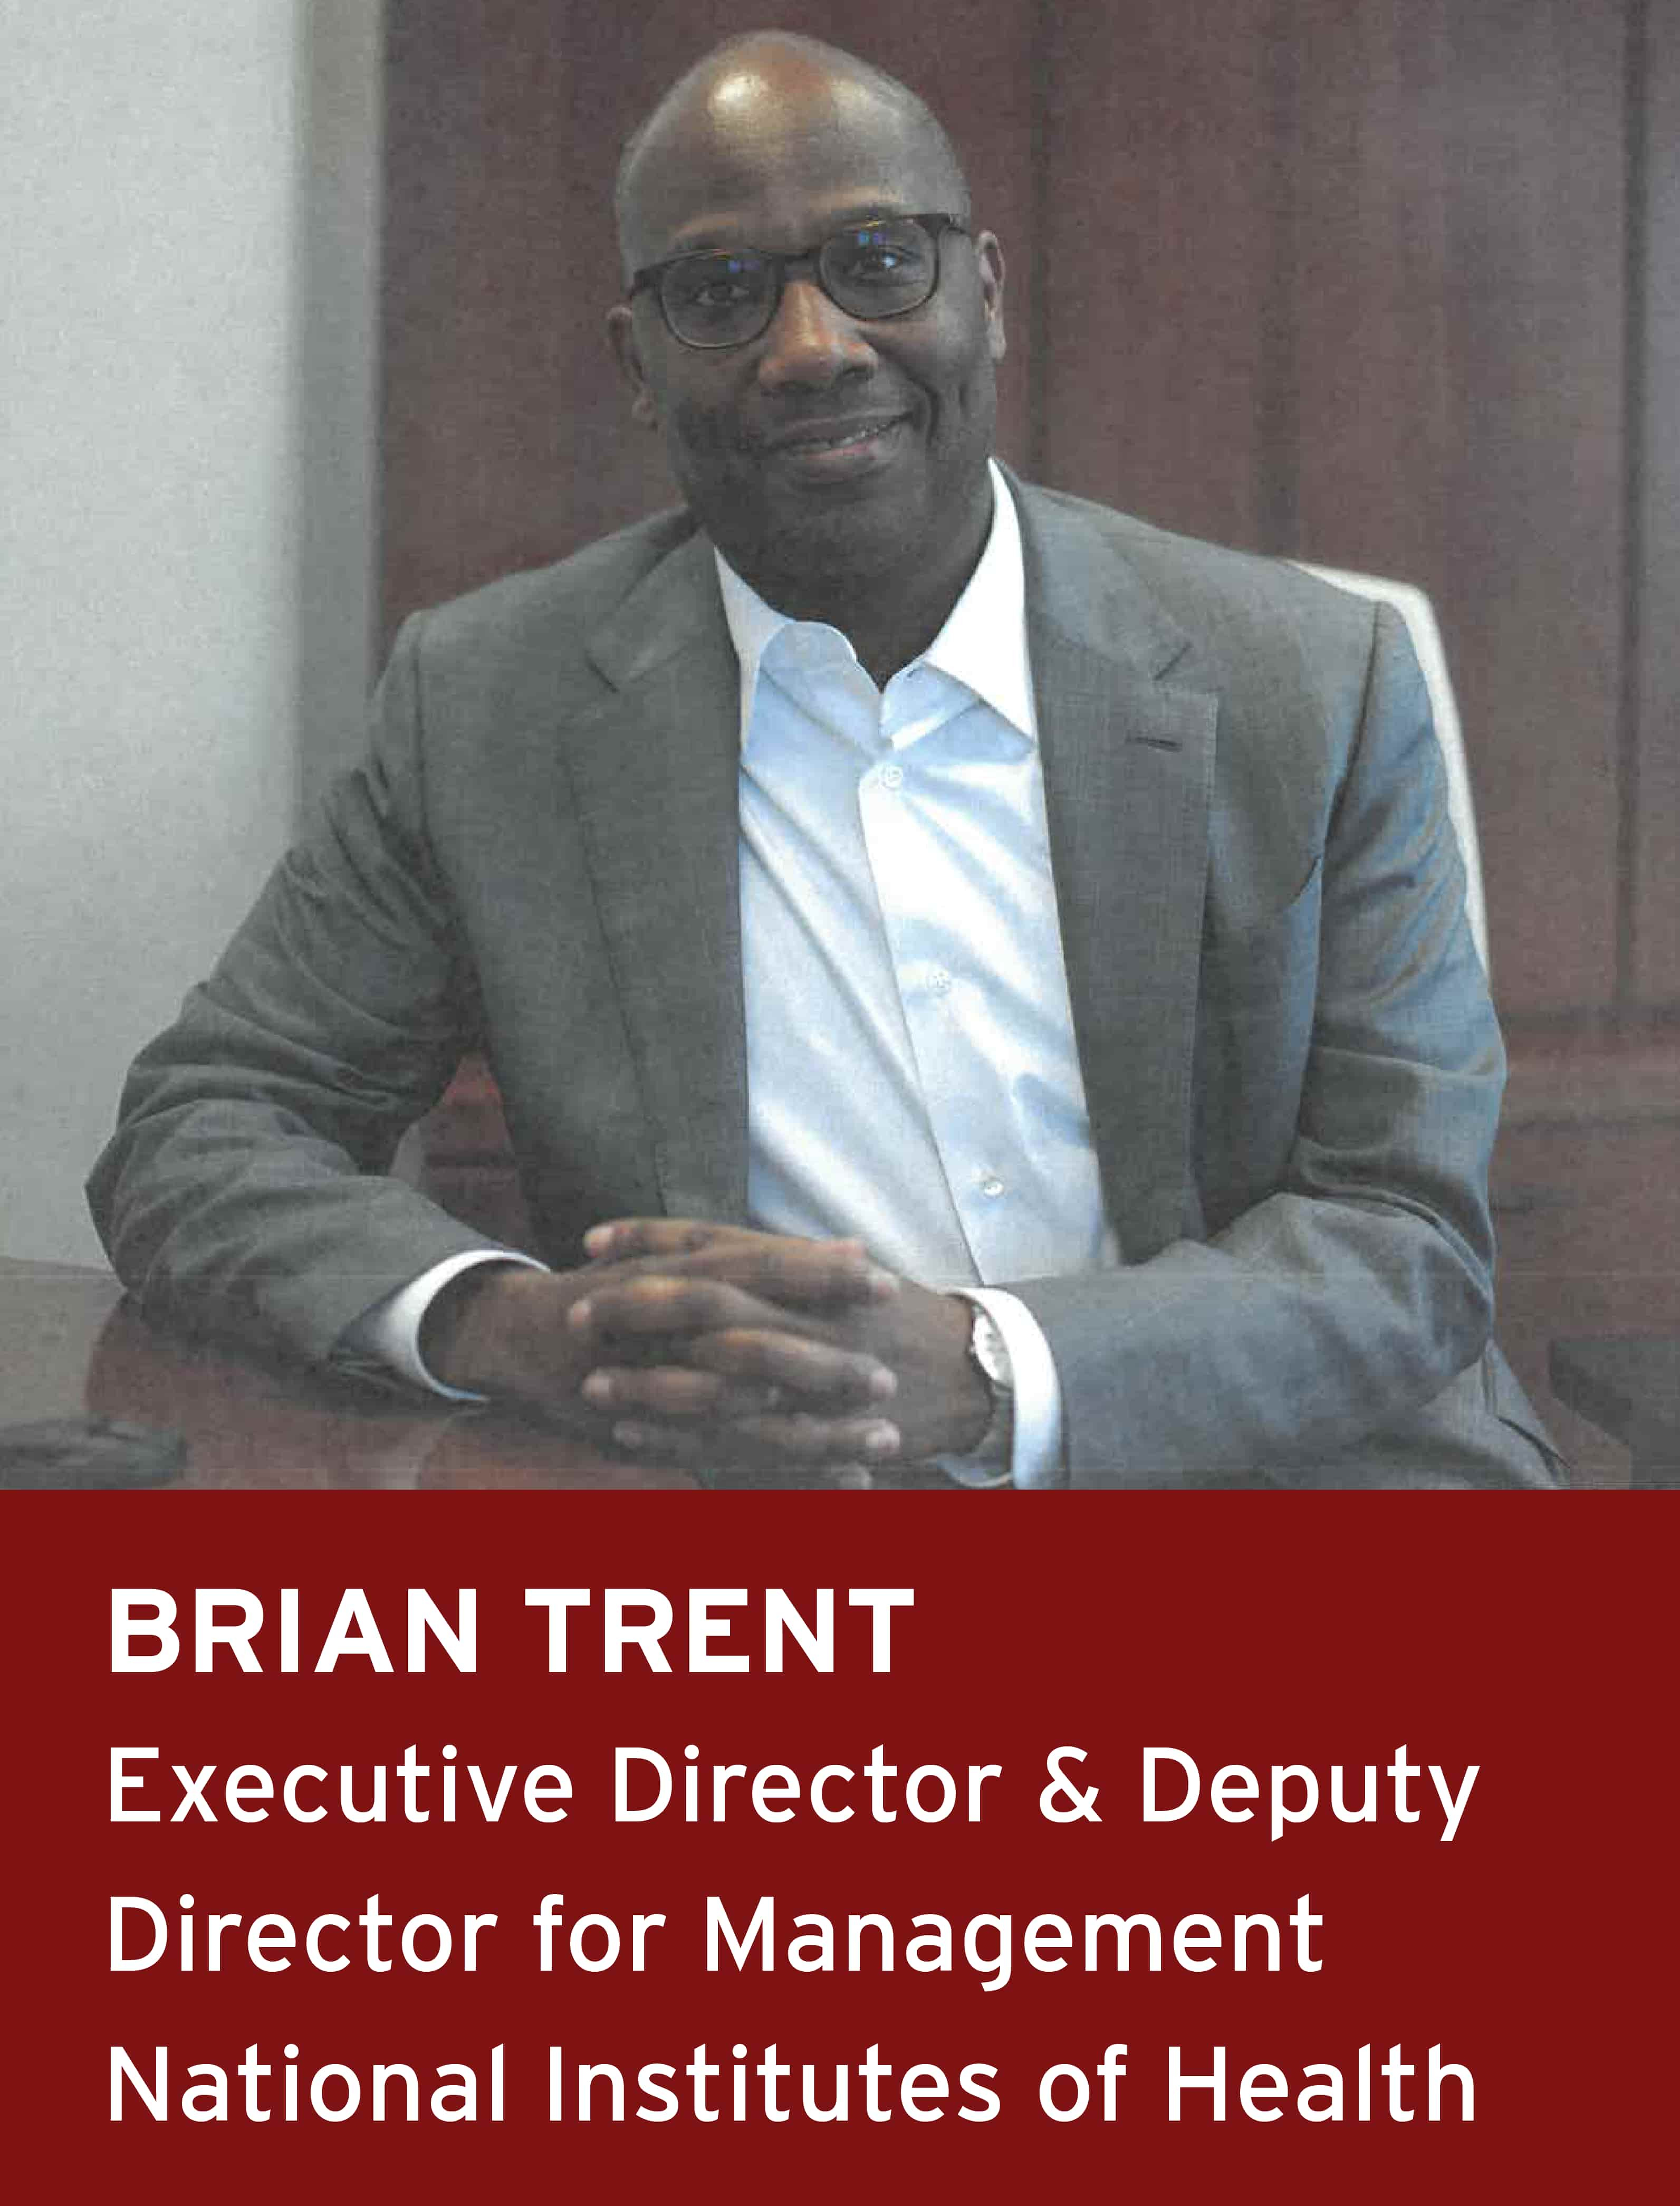 Brian Trent, Executive Director & Deputy Director for Management, National Institutes of Health